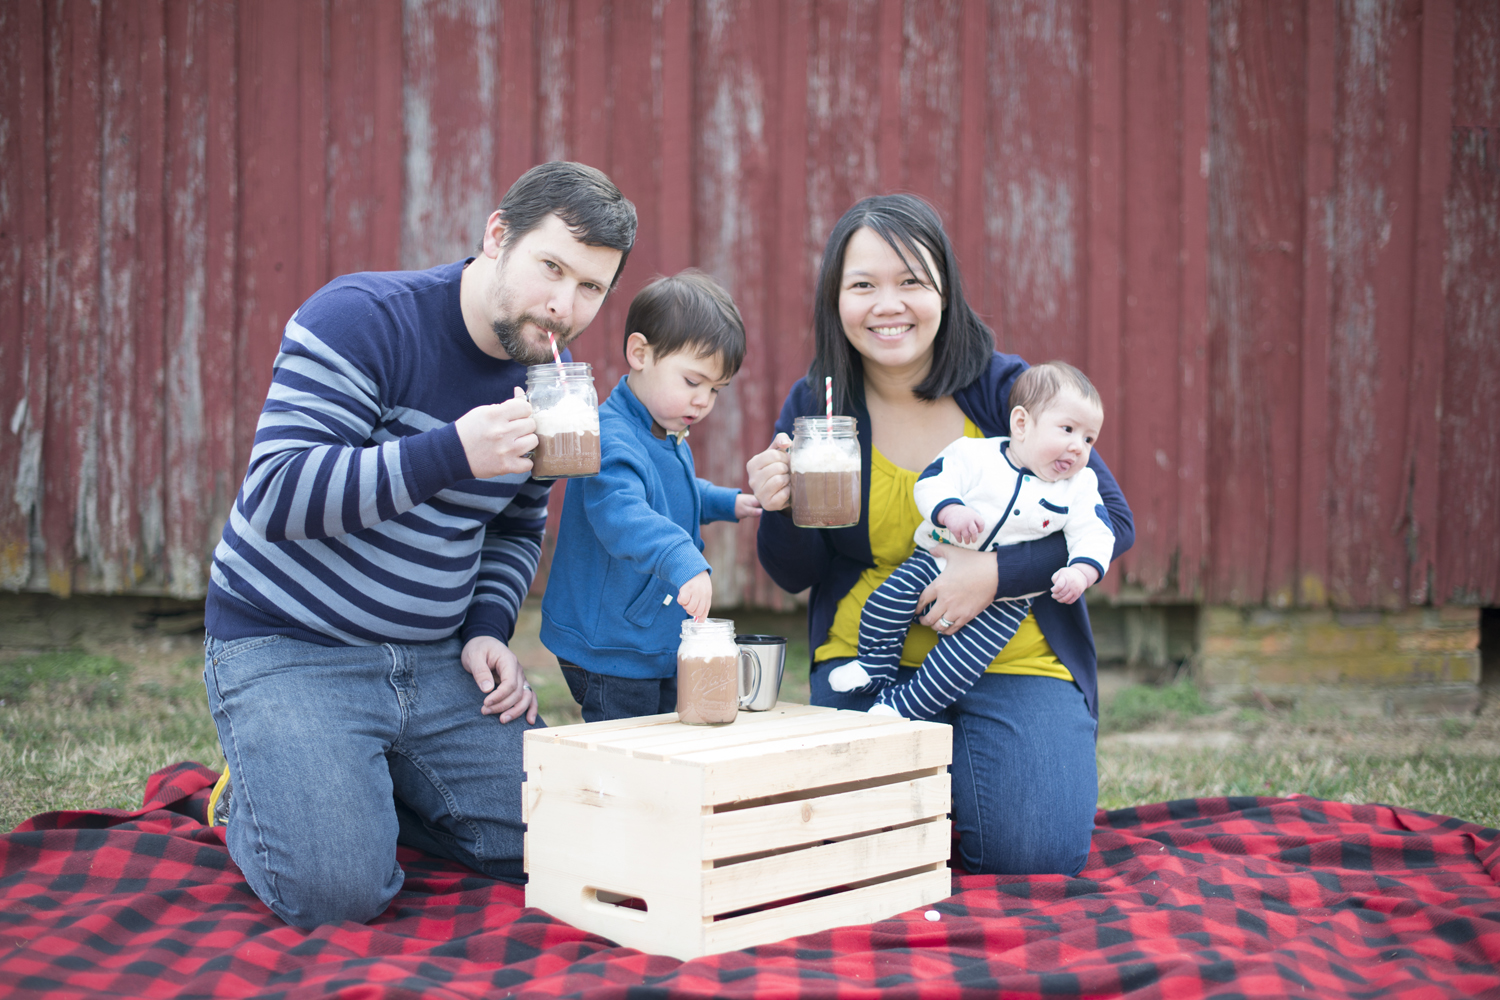 Cute family picture idea with hot chocolate mugs